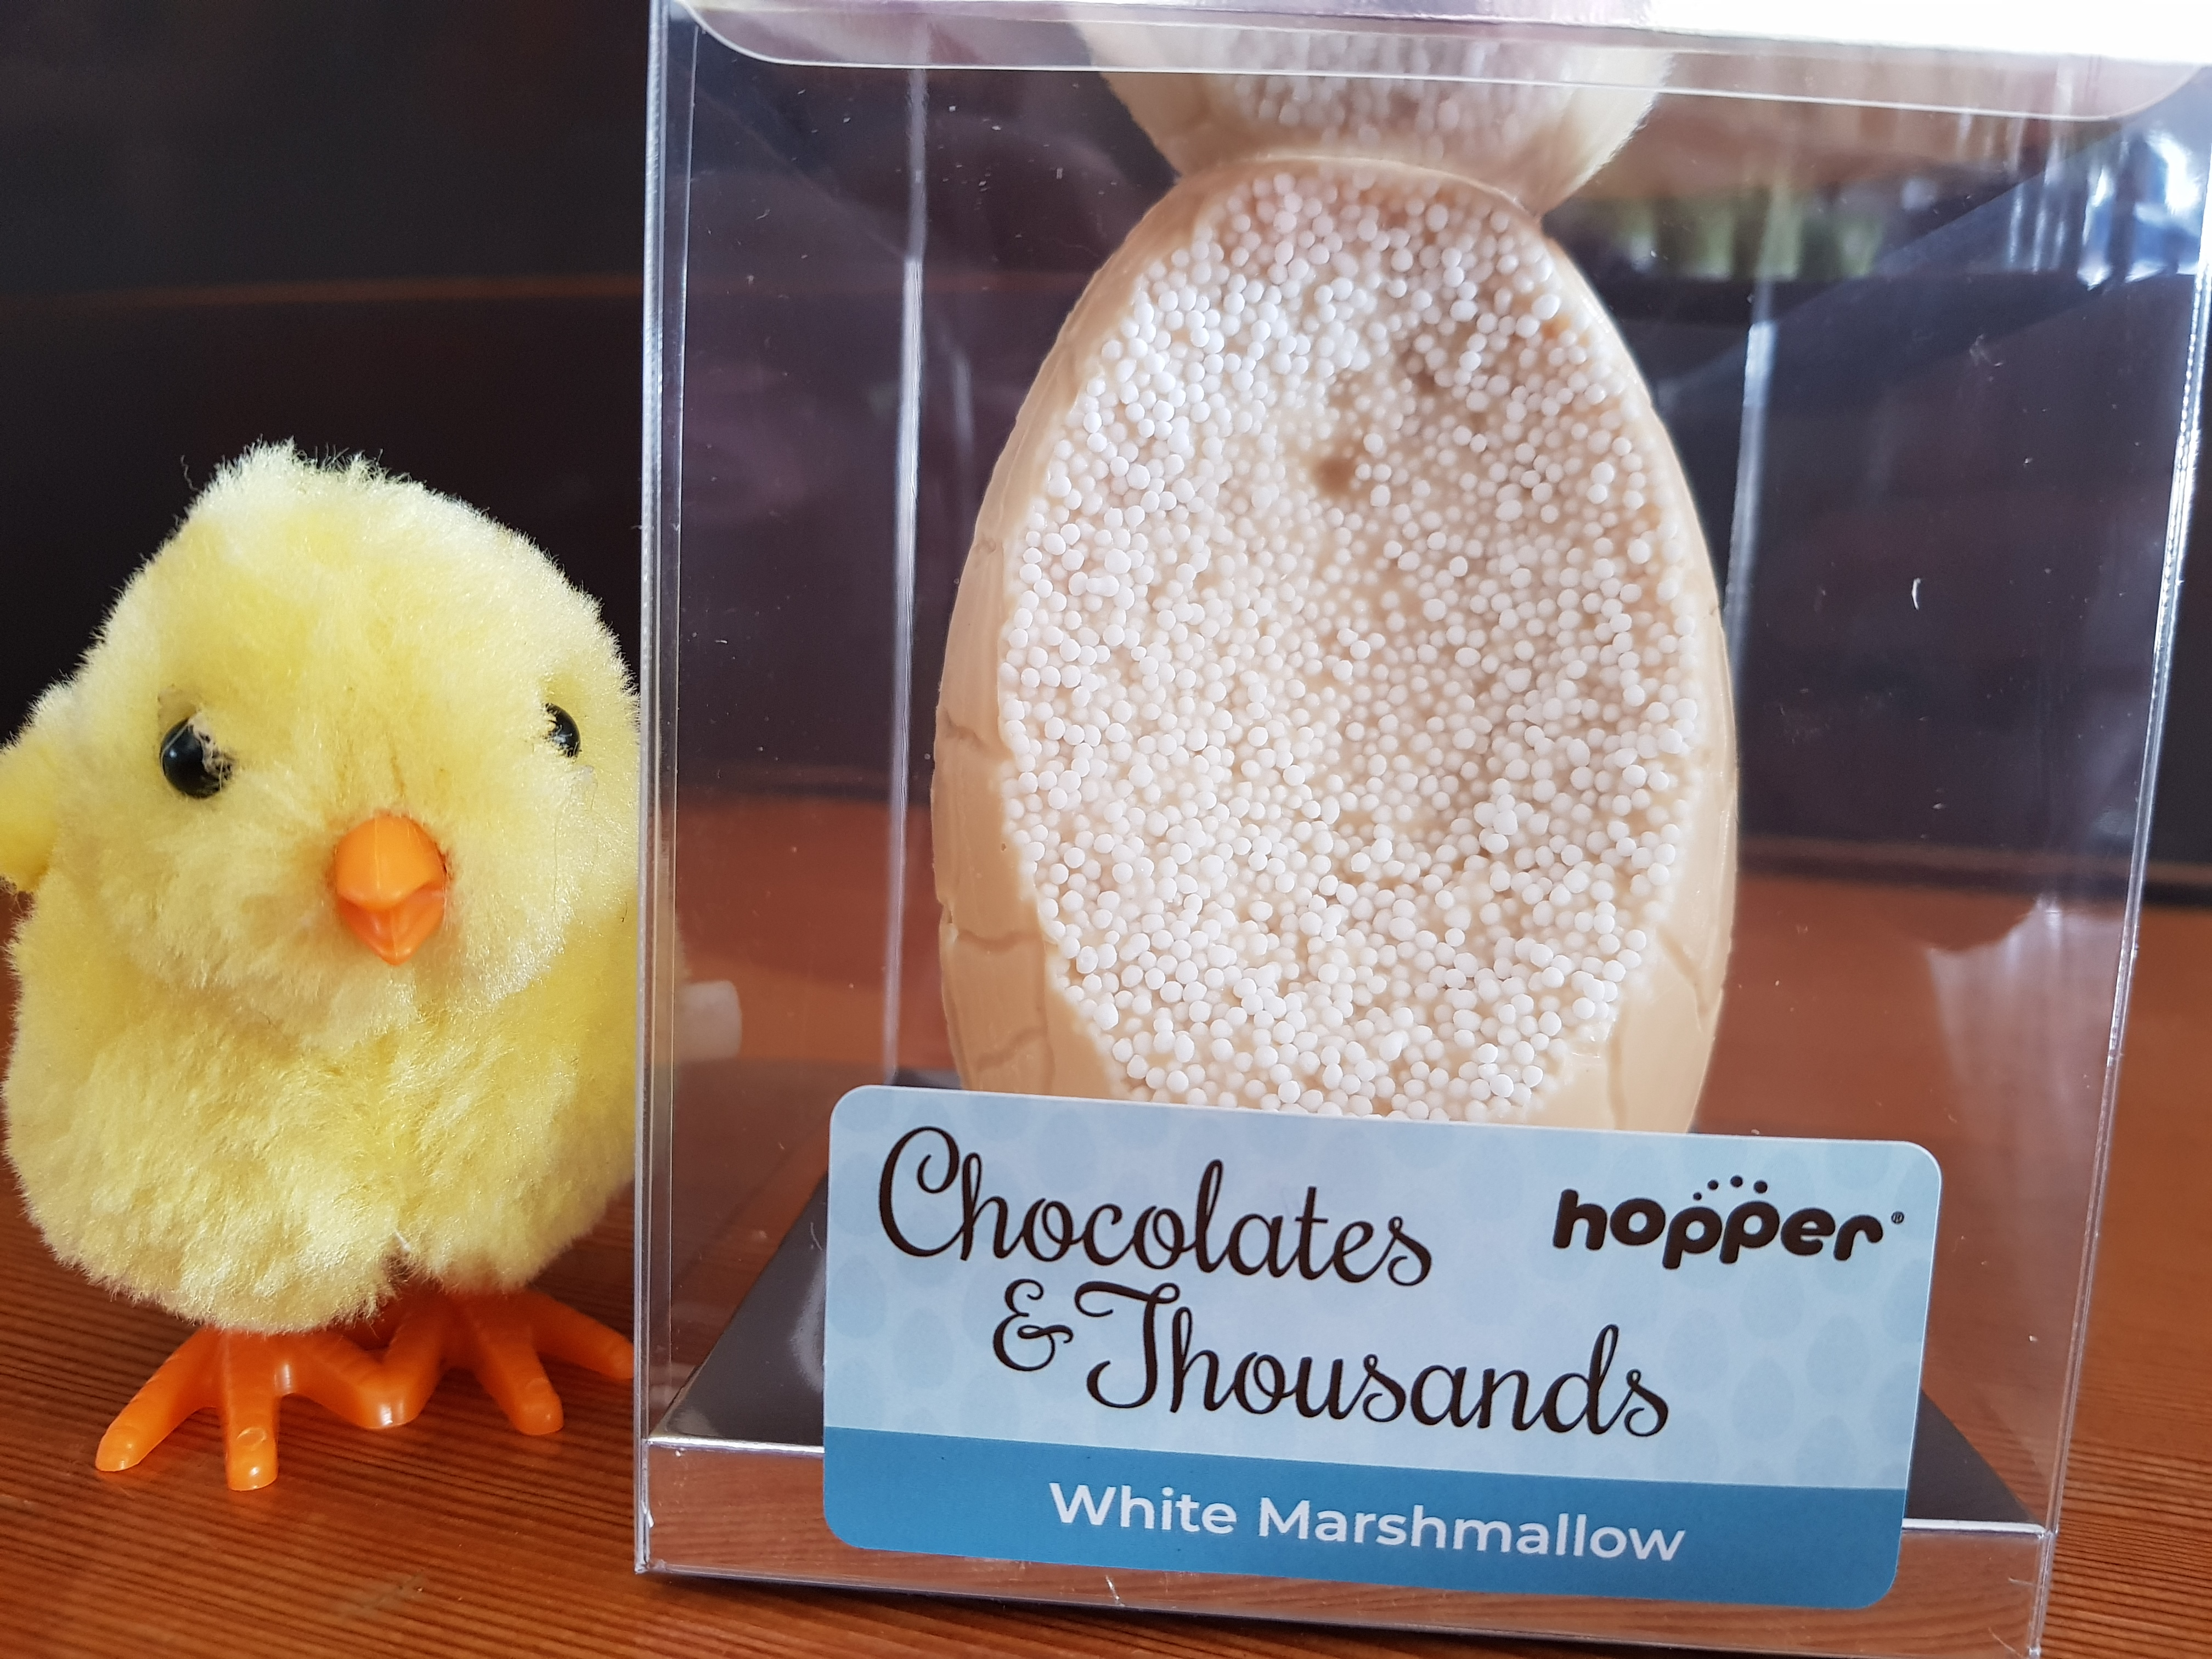 Hopper Chocolates and Thousands, White Marshmallow Gluten, Dairy and Nut free Easter Egg